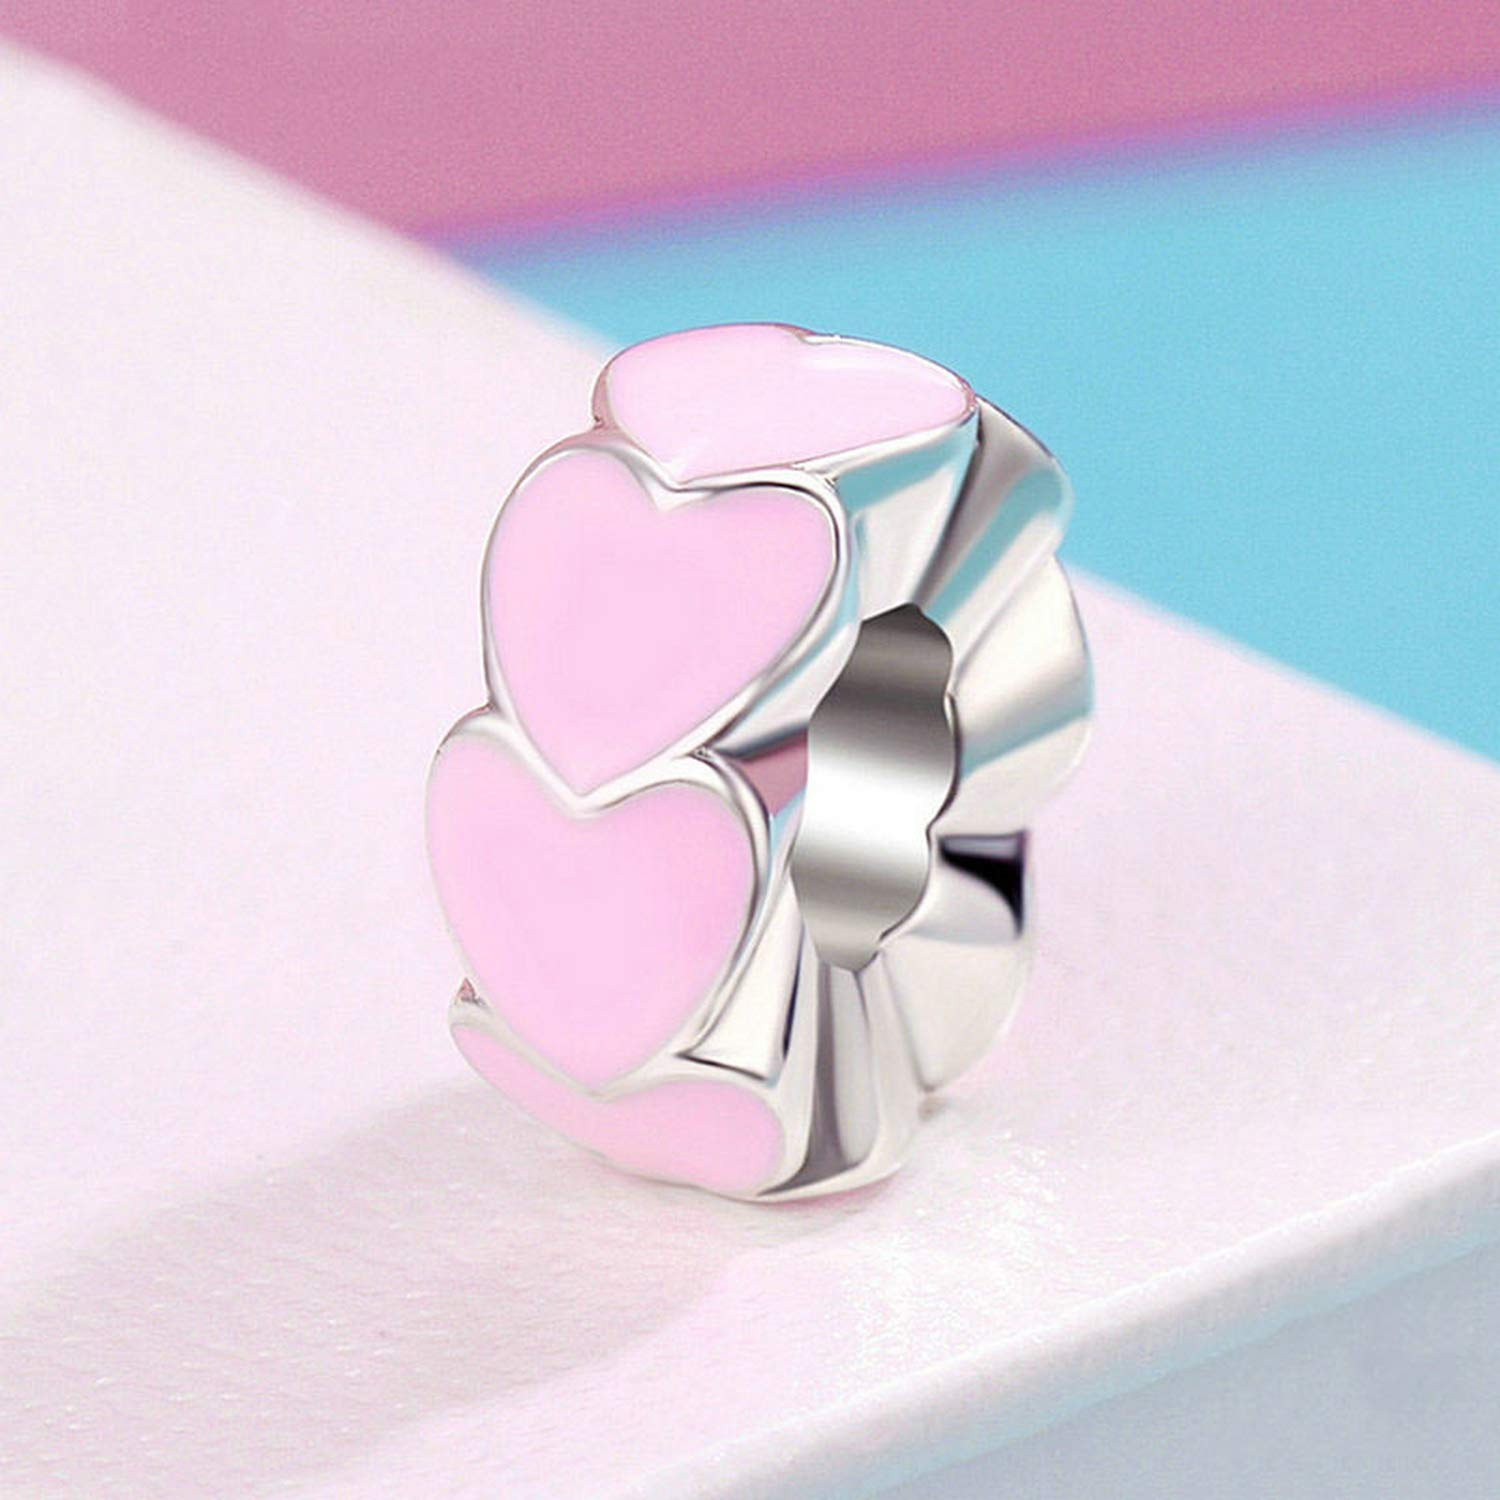 Evereena Silver Beads Bracelet for Girls Pink Sweet Love Heart Gift Spacer Womens Jewelry